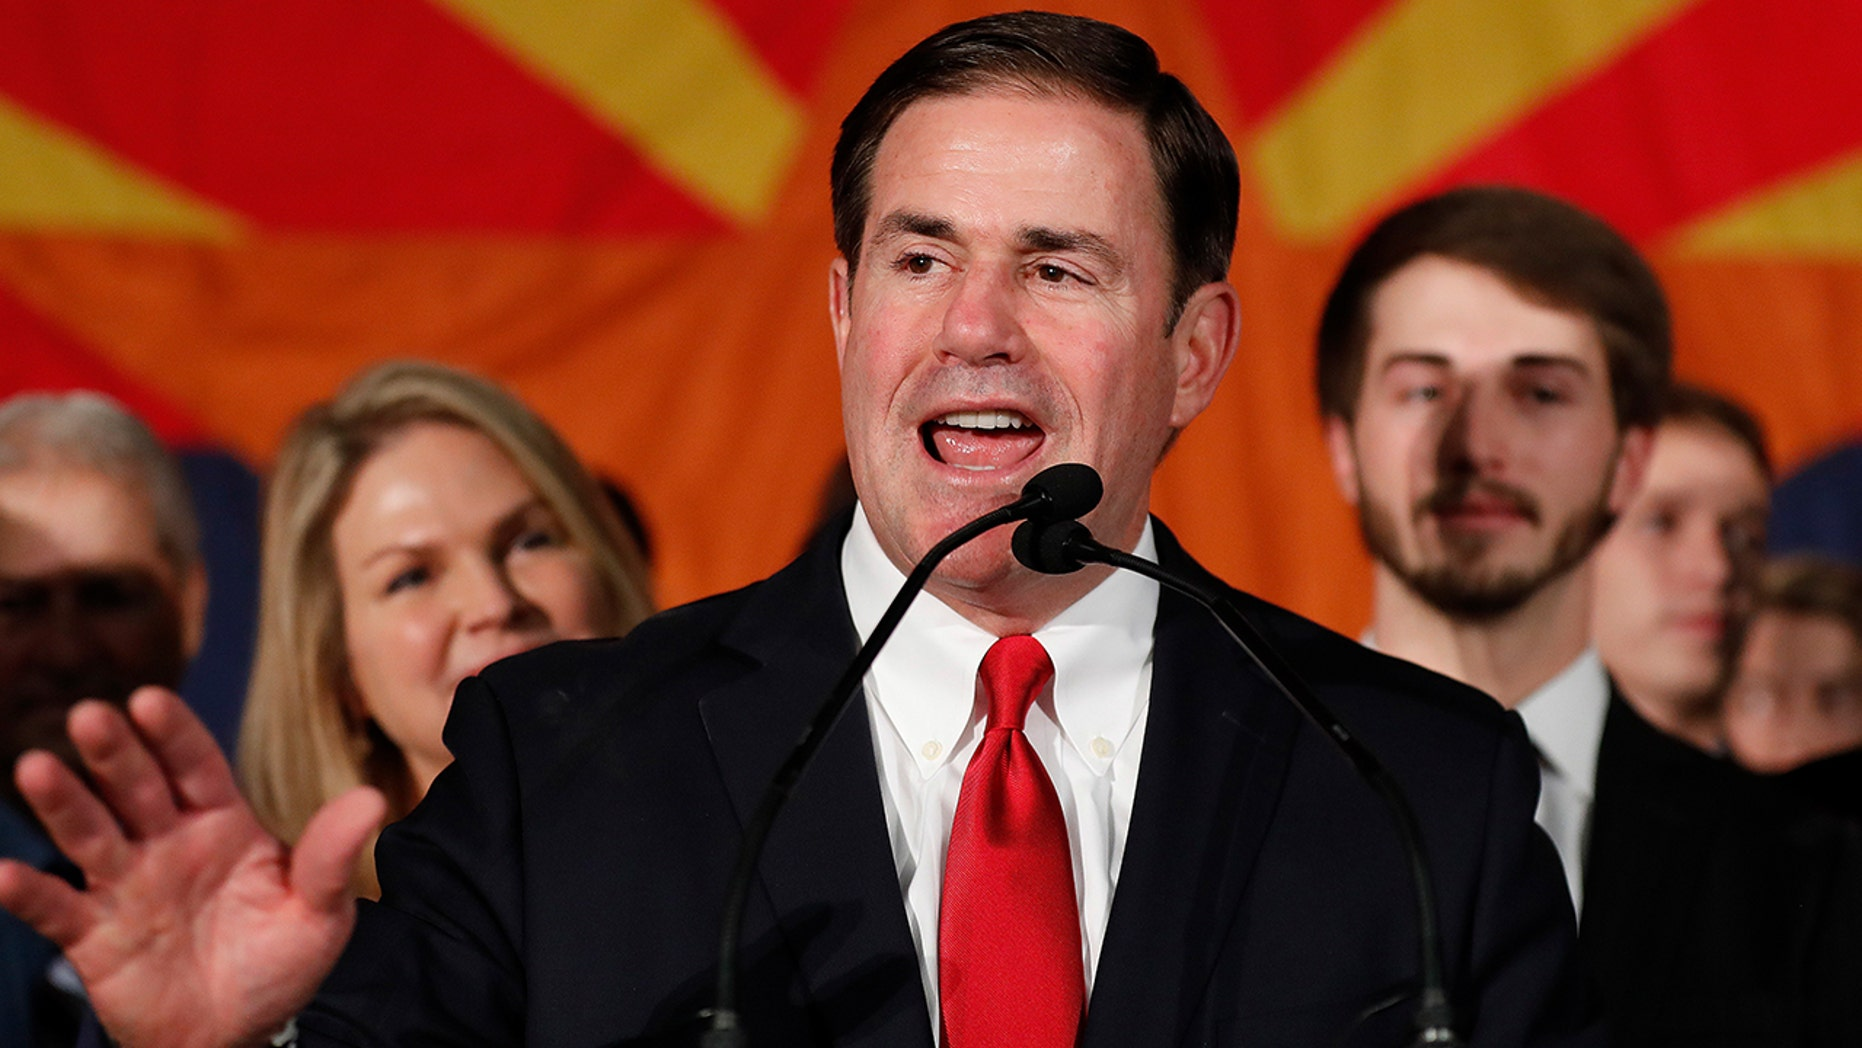 Republican Gov. Ducey won reelection Tuesday night, defeating Democratic challenger David Garcia.